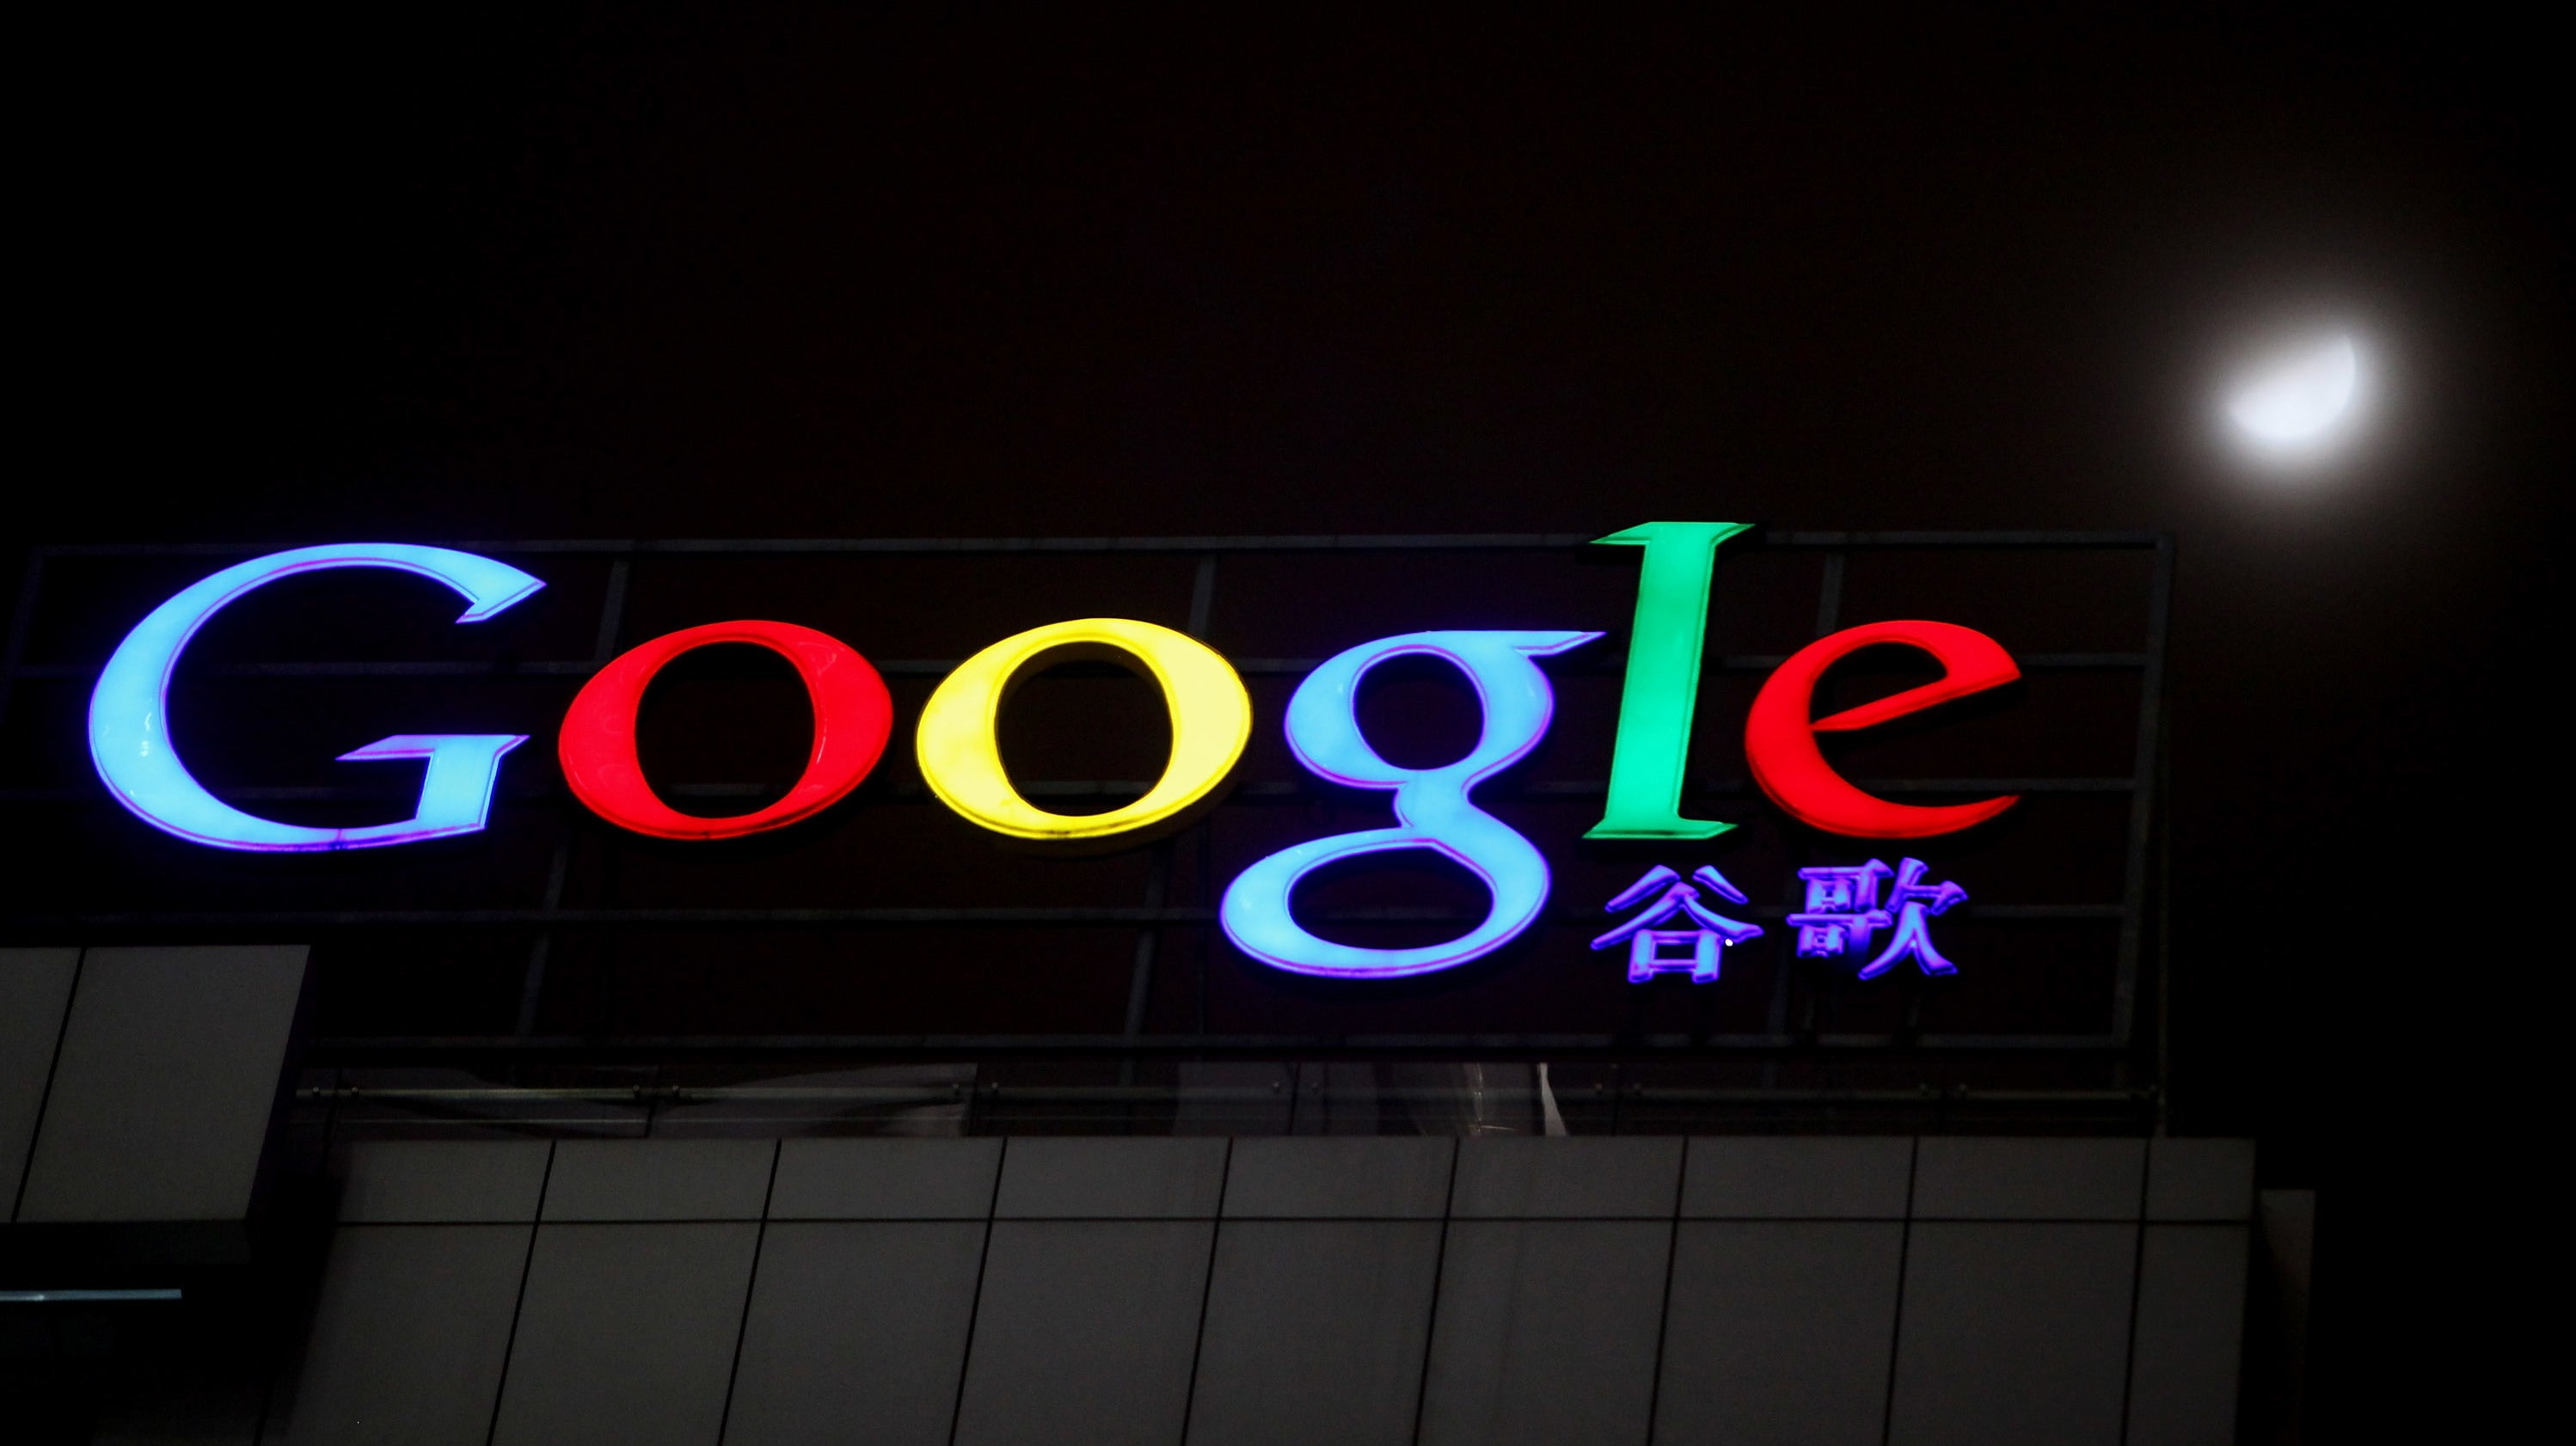 US Senators Demand Answers On Google's Reported Plans For Censored Search Engine In China